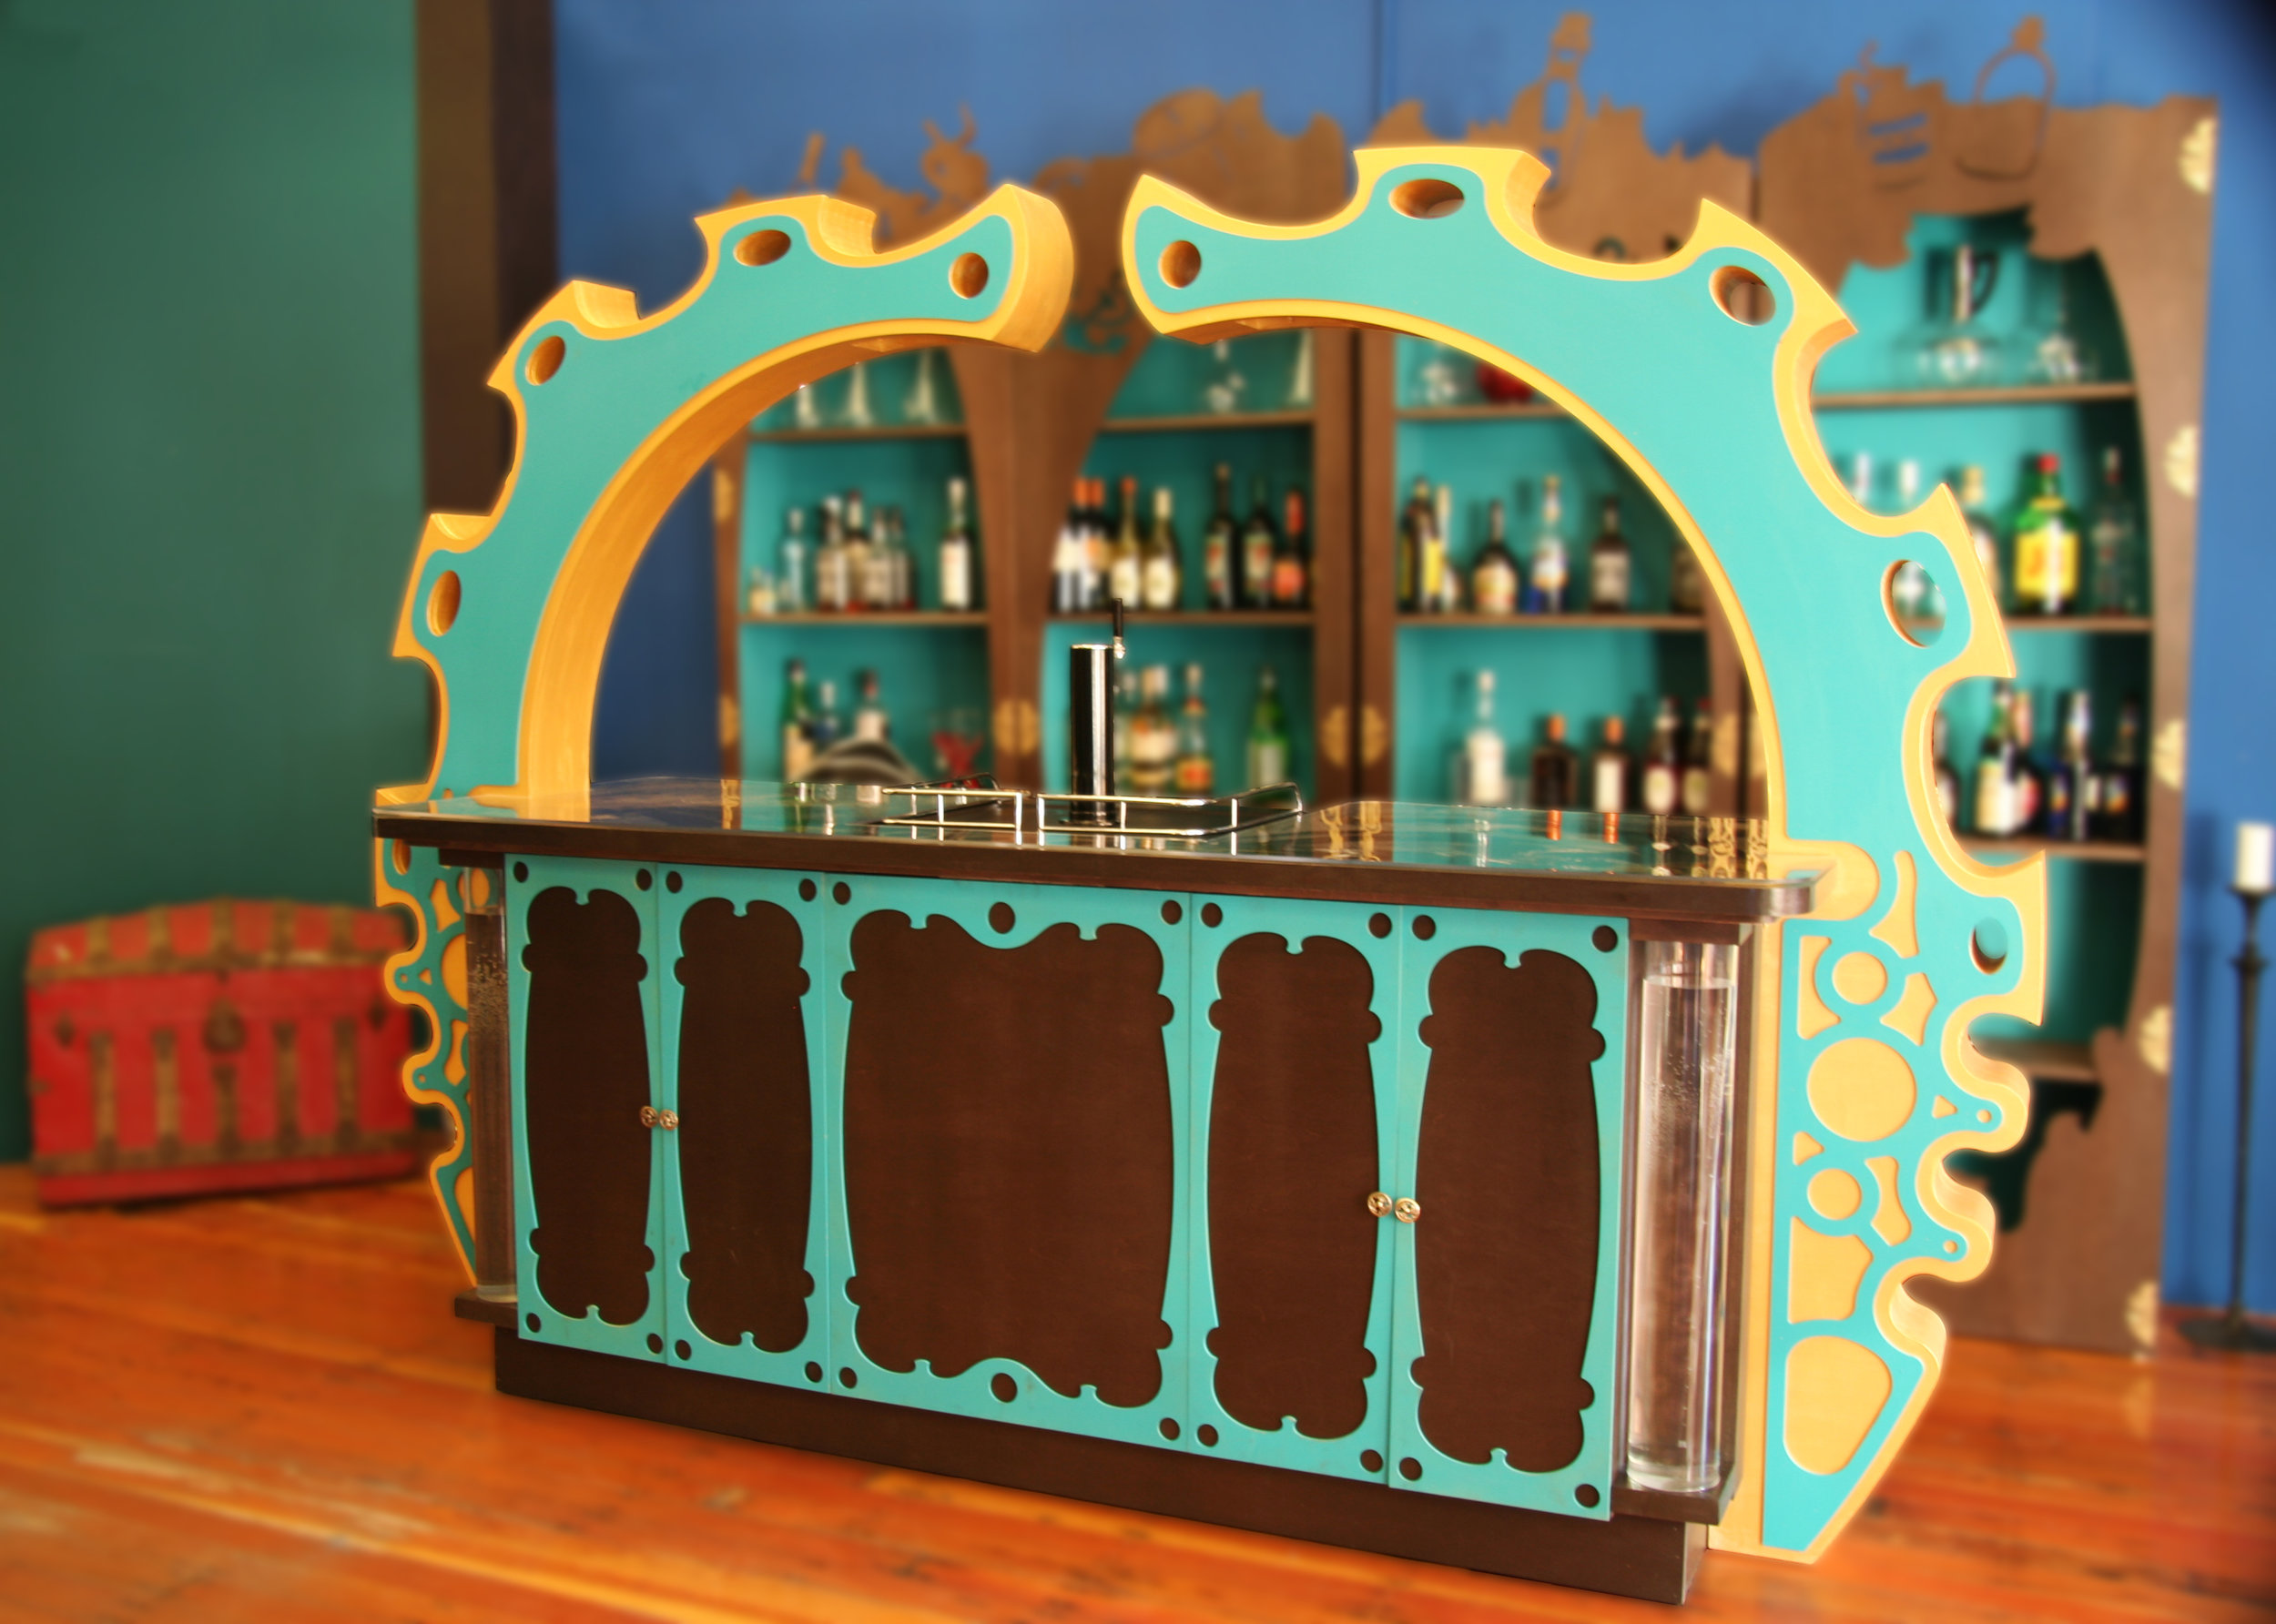 We designed this bar from the depths of our imaginations. We aimed for something cool and unique.